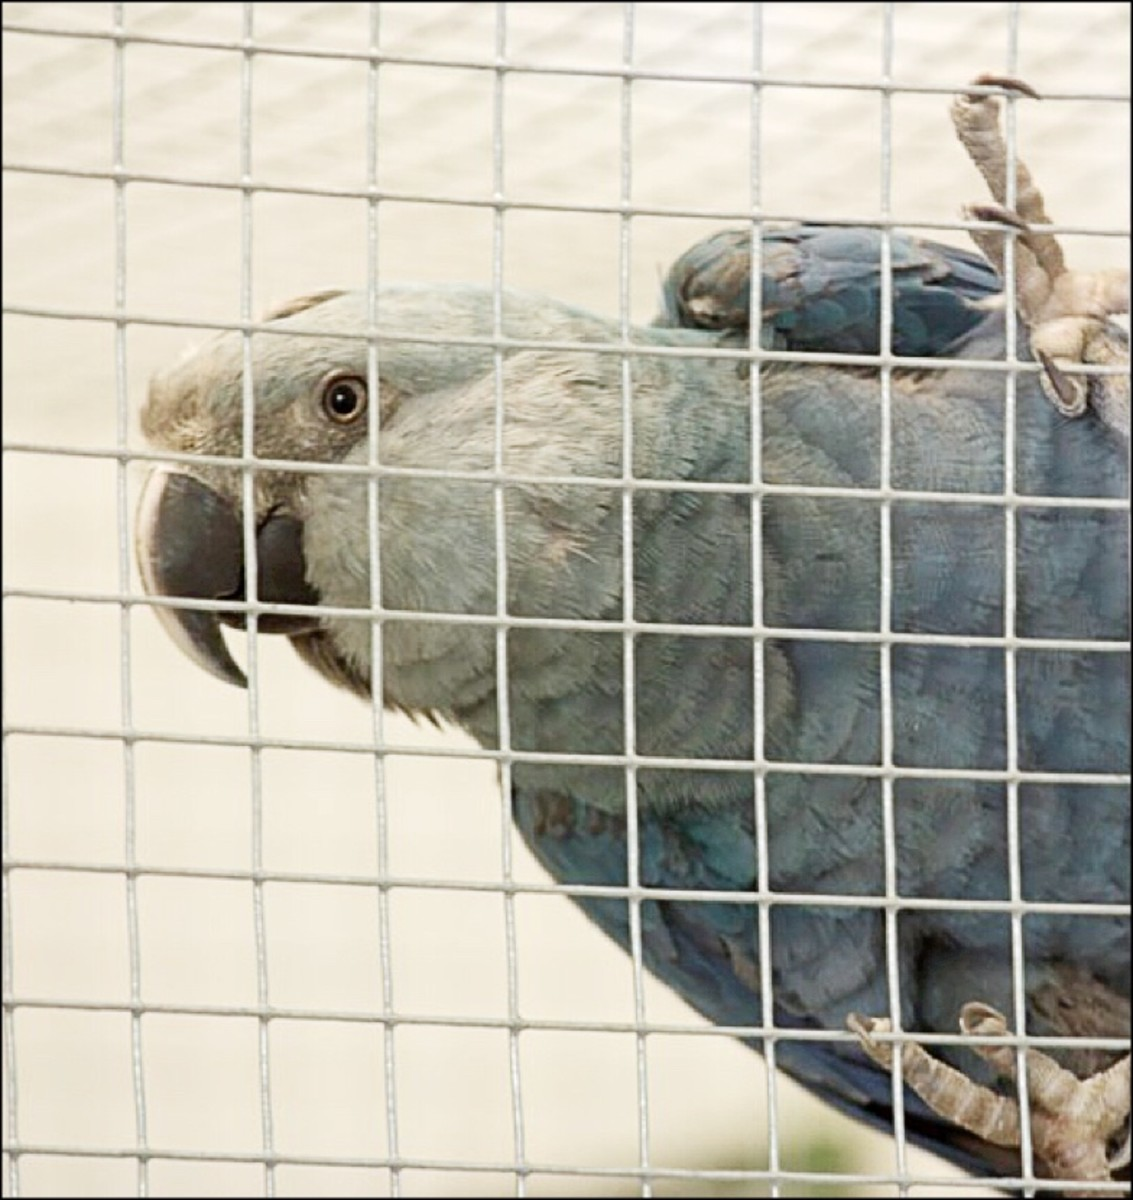 40 Facts About the Spix's Macaw: Extinct in the Wild